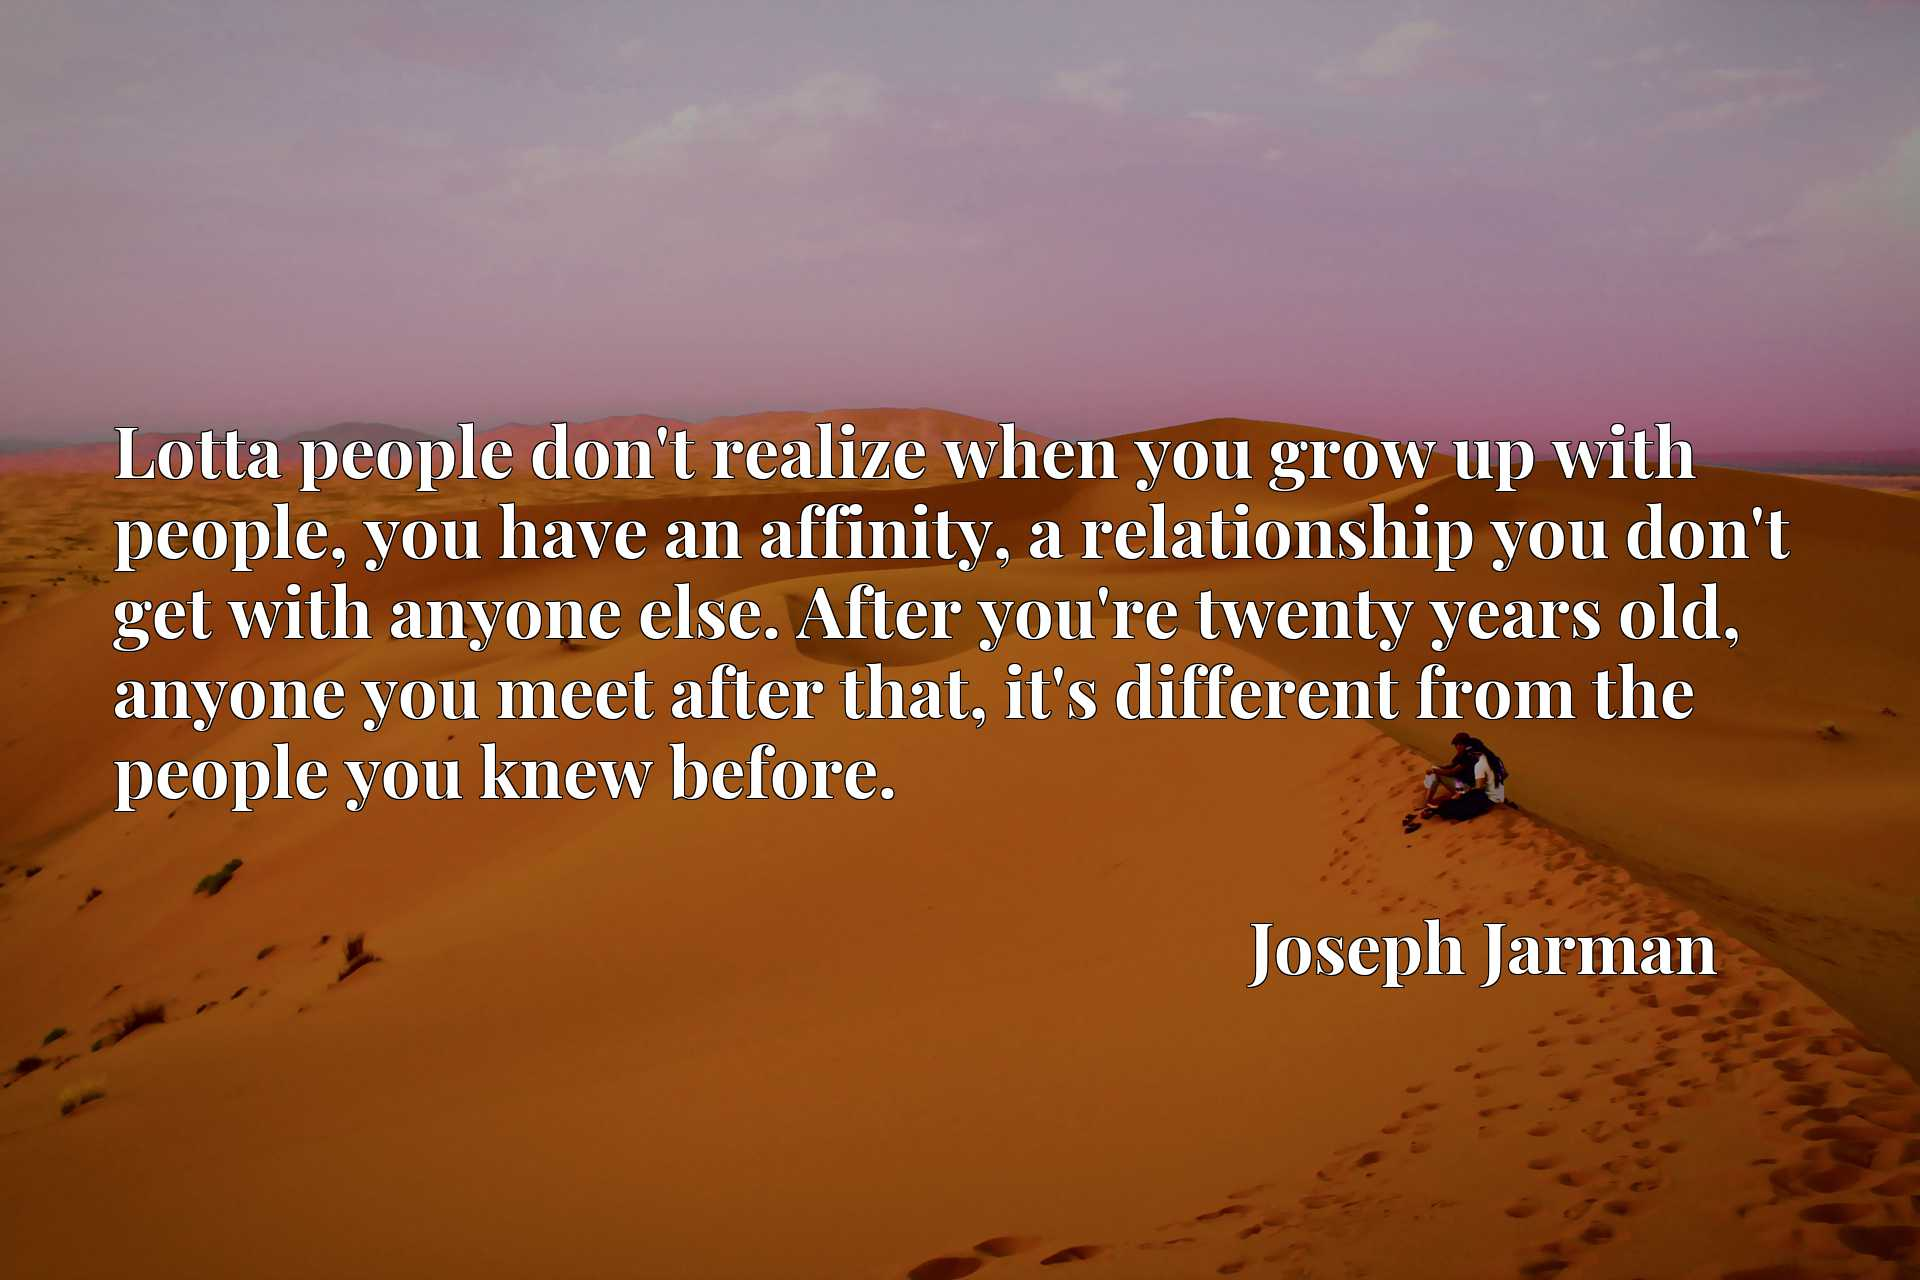 Lotta people don't realize when you grow up with people, you have an affinity, a relationship you don't get with anyone else. After you're twenty years old, anyone you meet after that, it's different from the people you knew before.